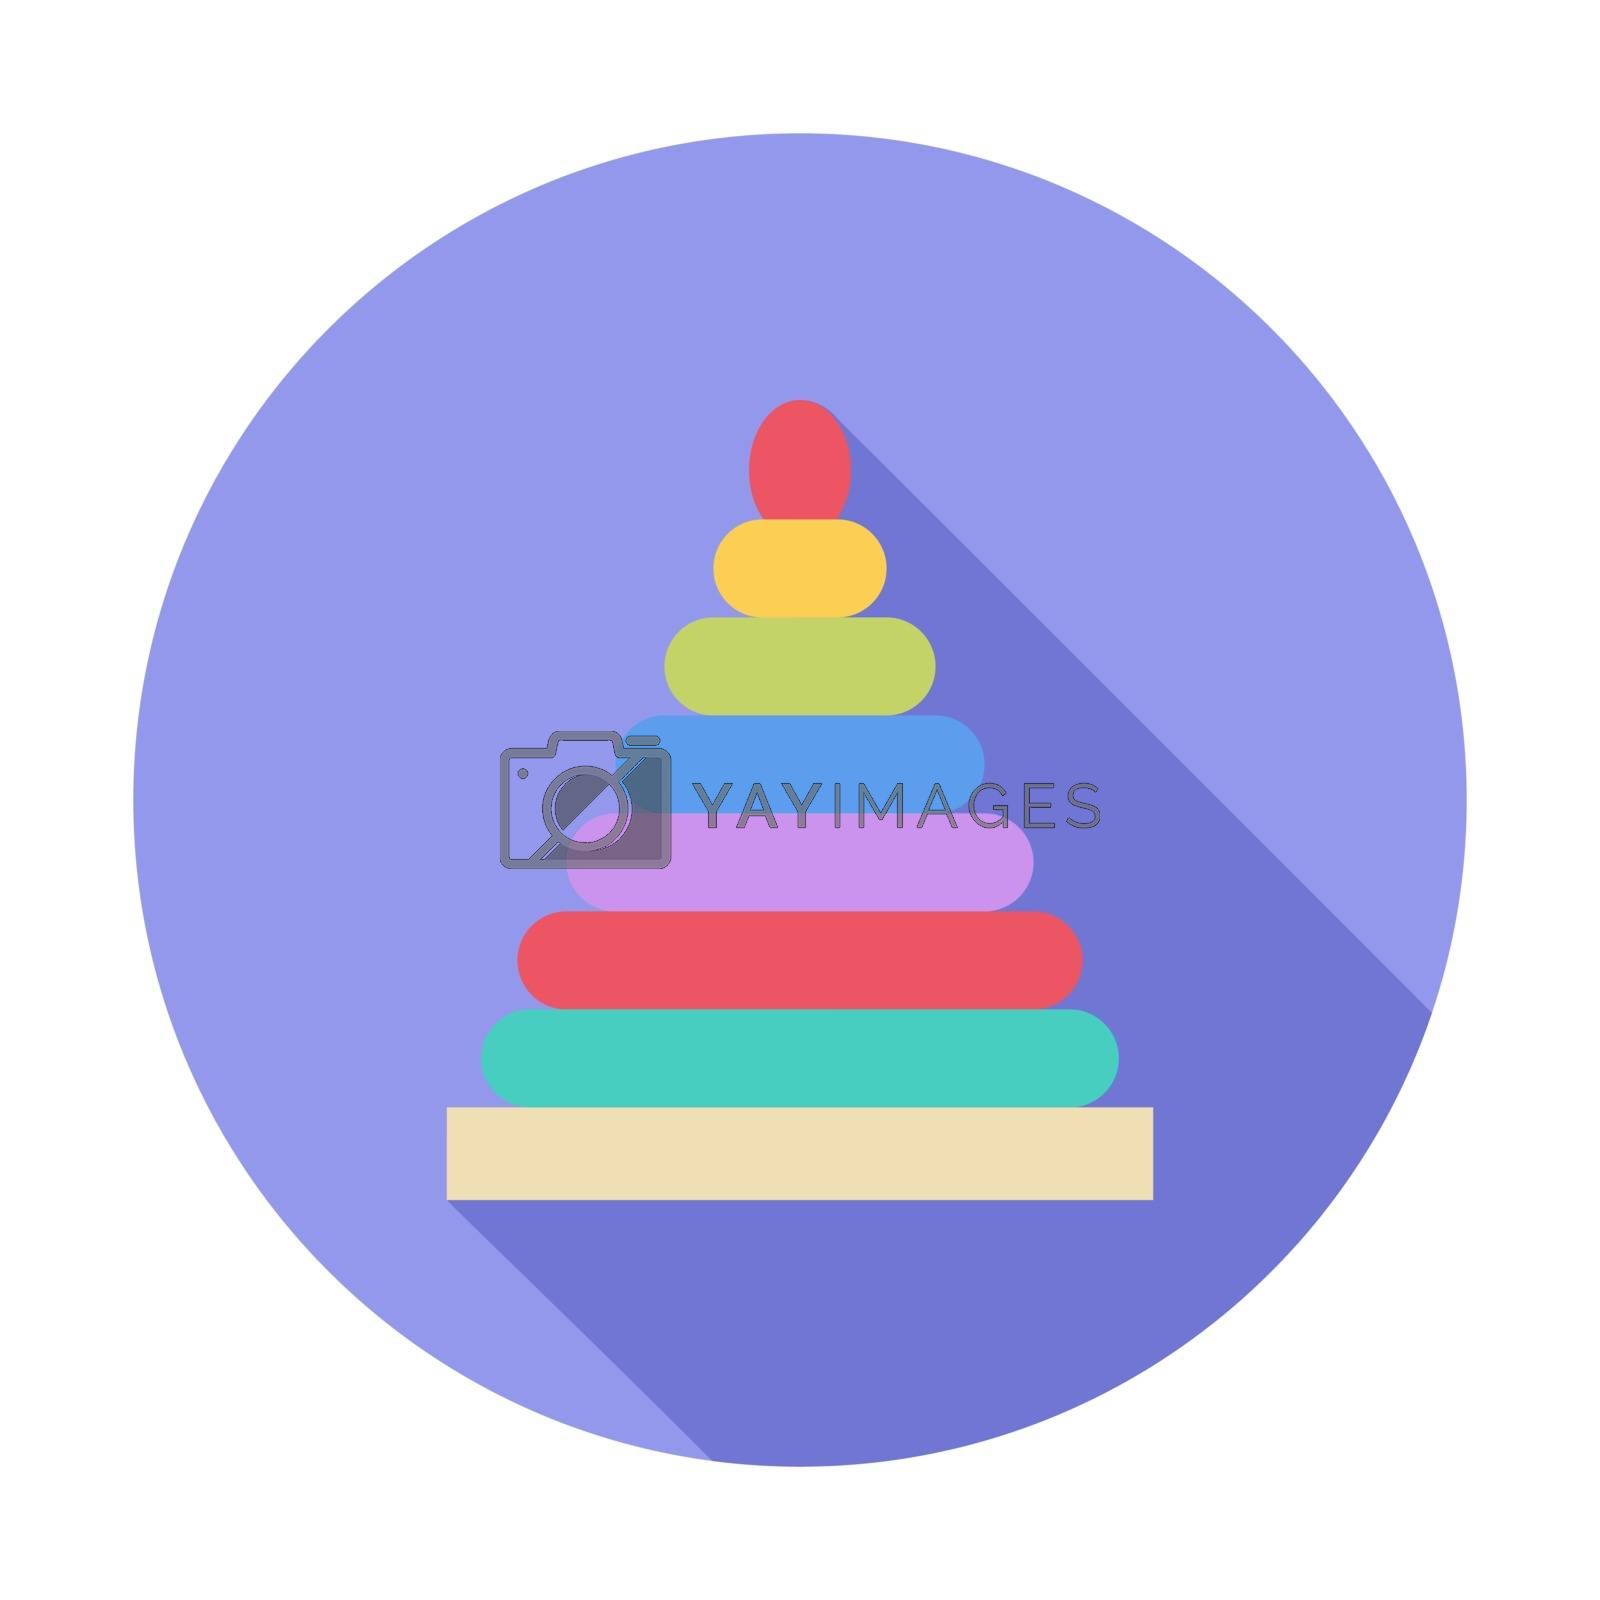 Pyramid toy icon. Flat vector related icon with long shadow for web and mobile applications. It can be used as - logo, pictogram, icon, infographic element. Vector Illustration.